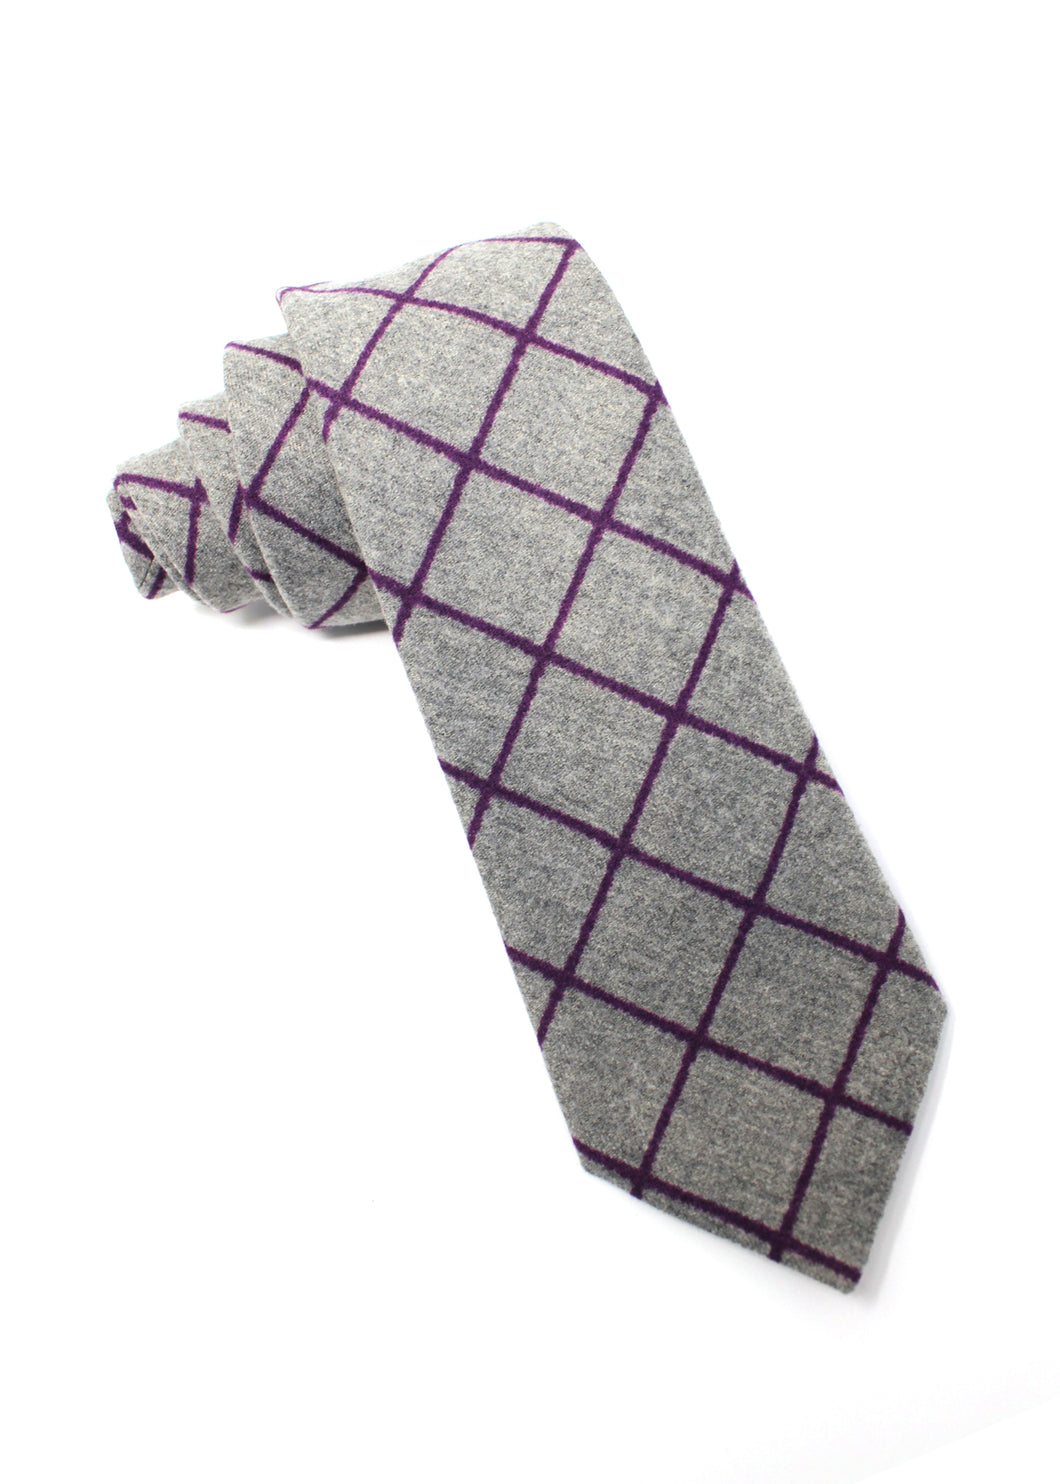 Grey Flannel Tie with Magenta Window-Pane